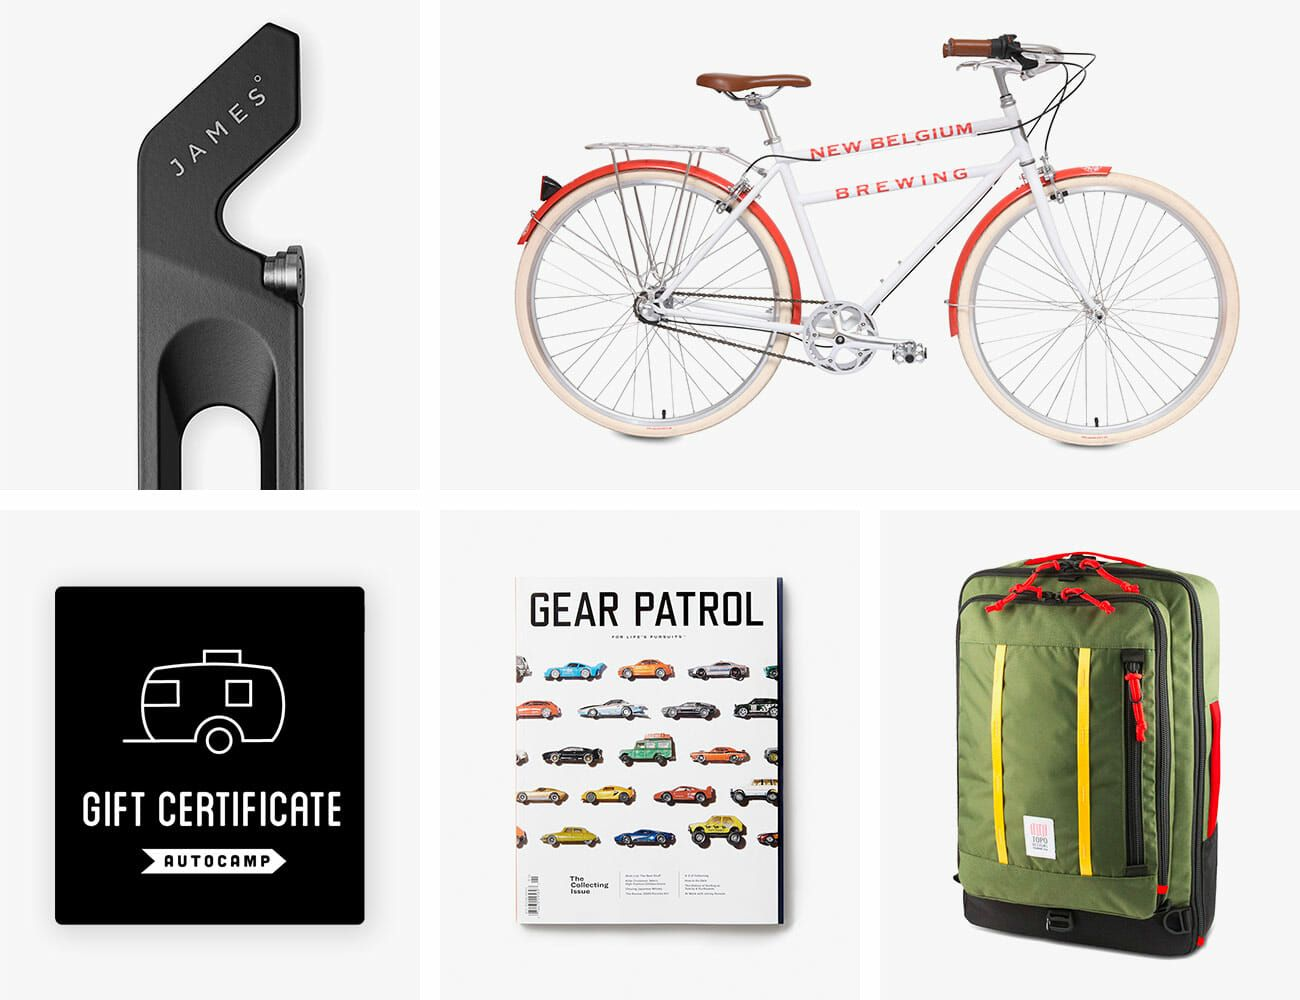 [Closed] Win: A $1,300+ Prize Pack for Your Summer Adventure